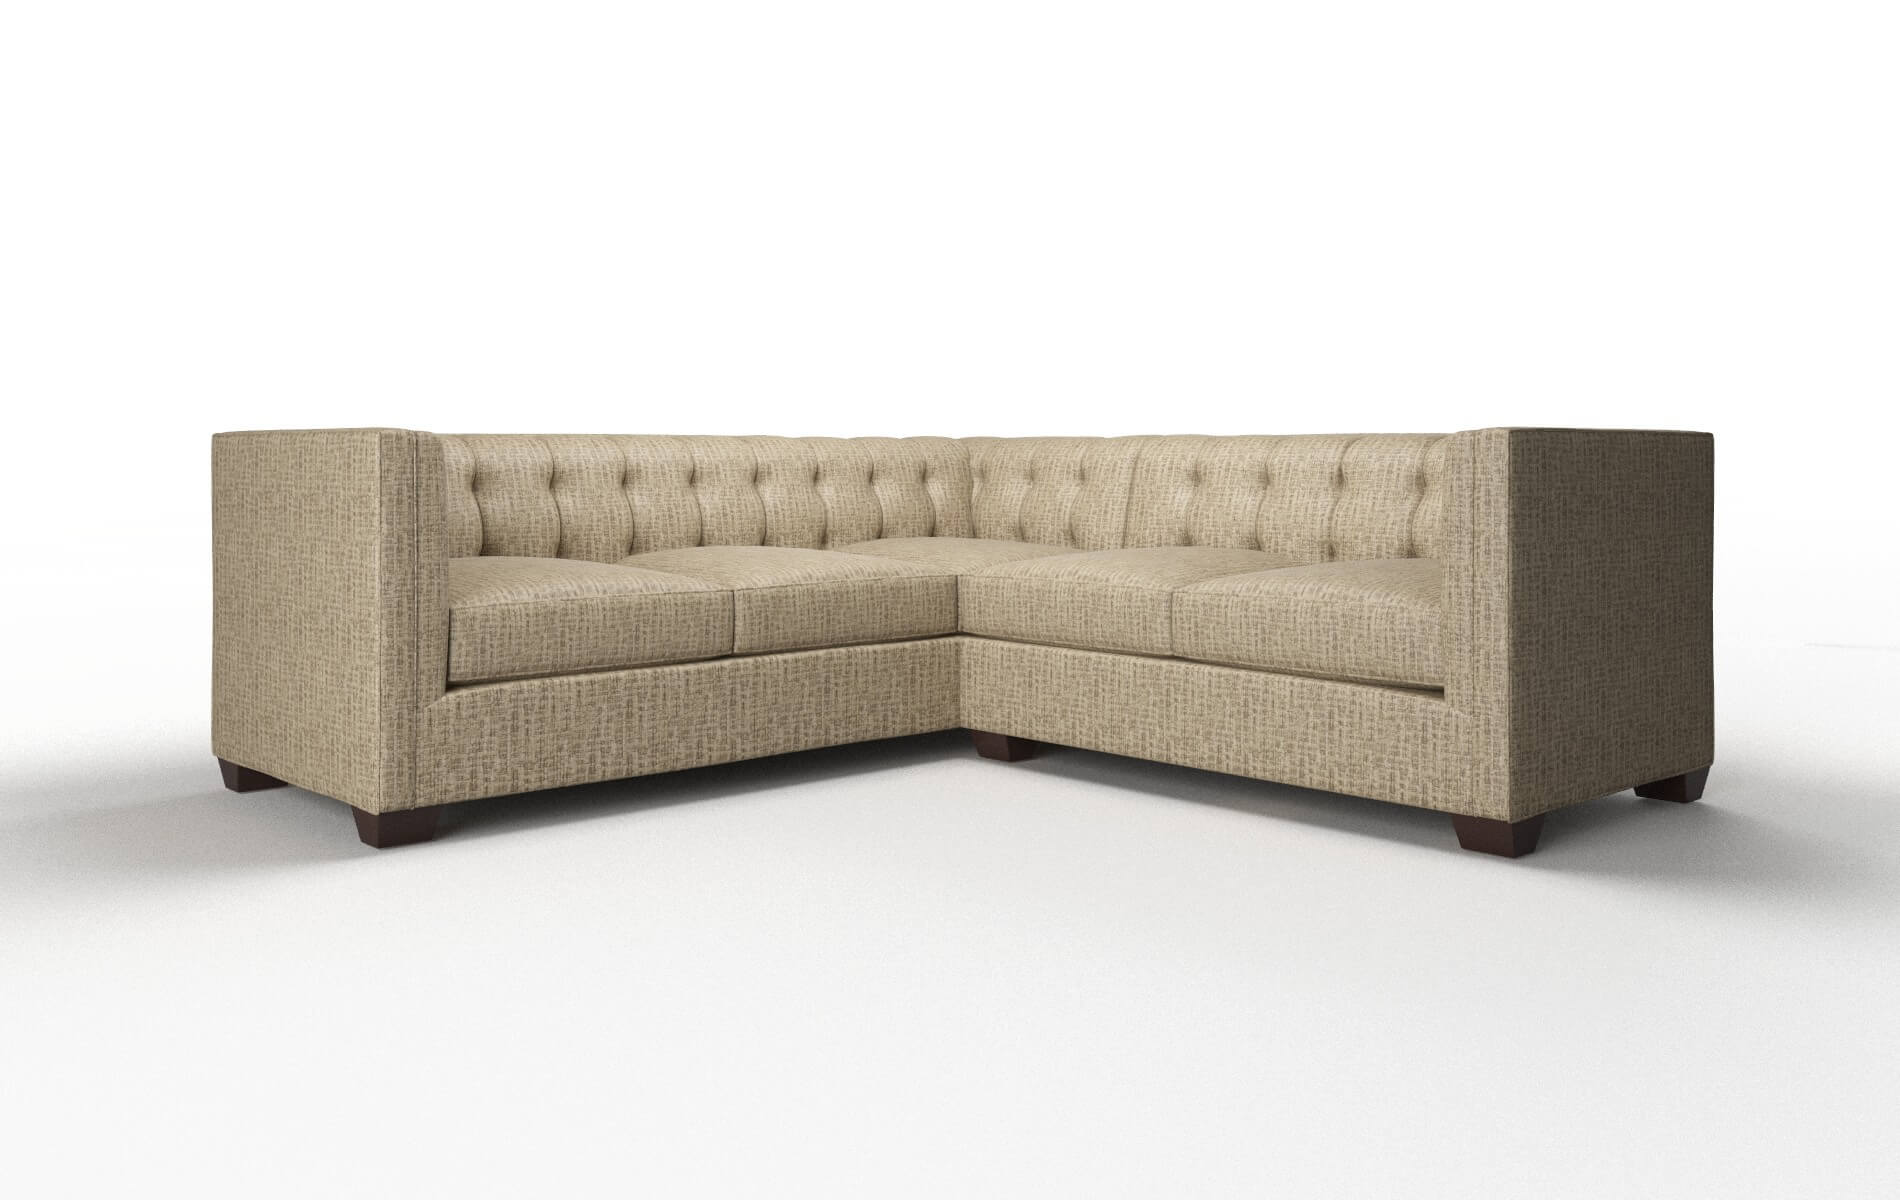 Grant Marcy Camel Sectional espresso legs 1